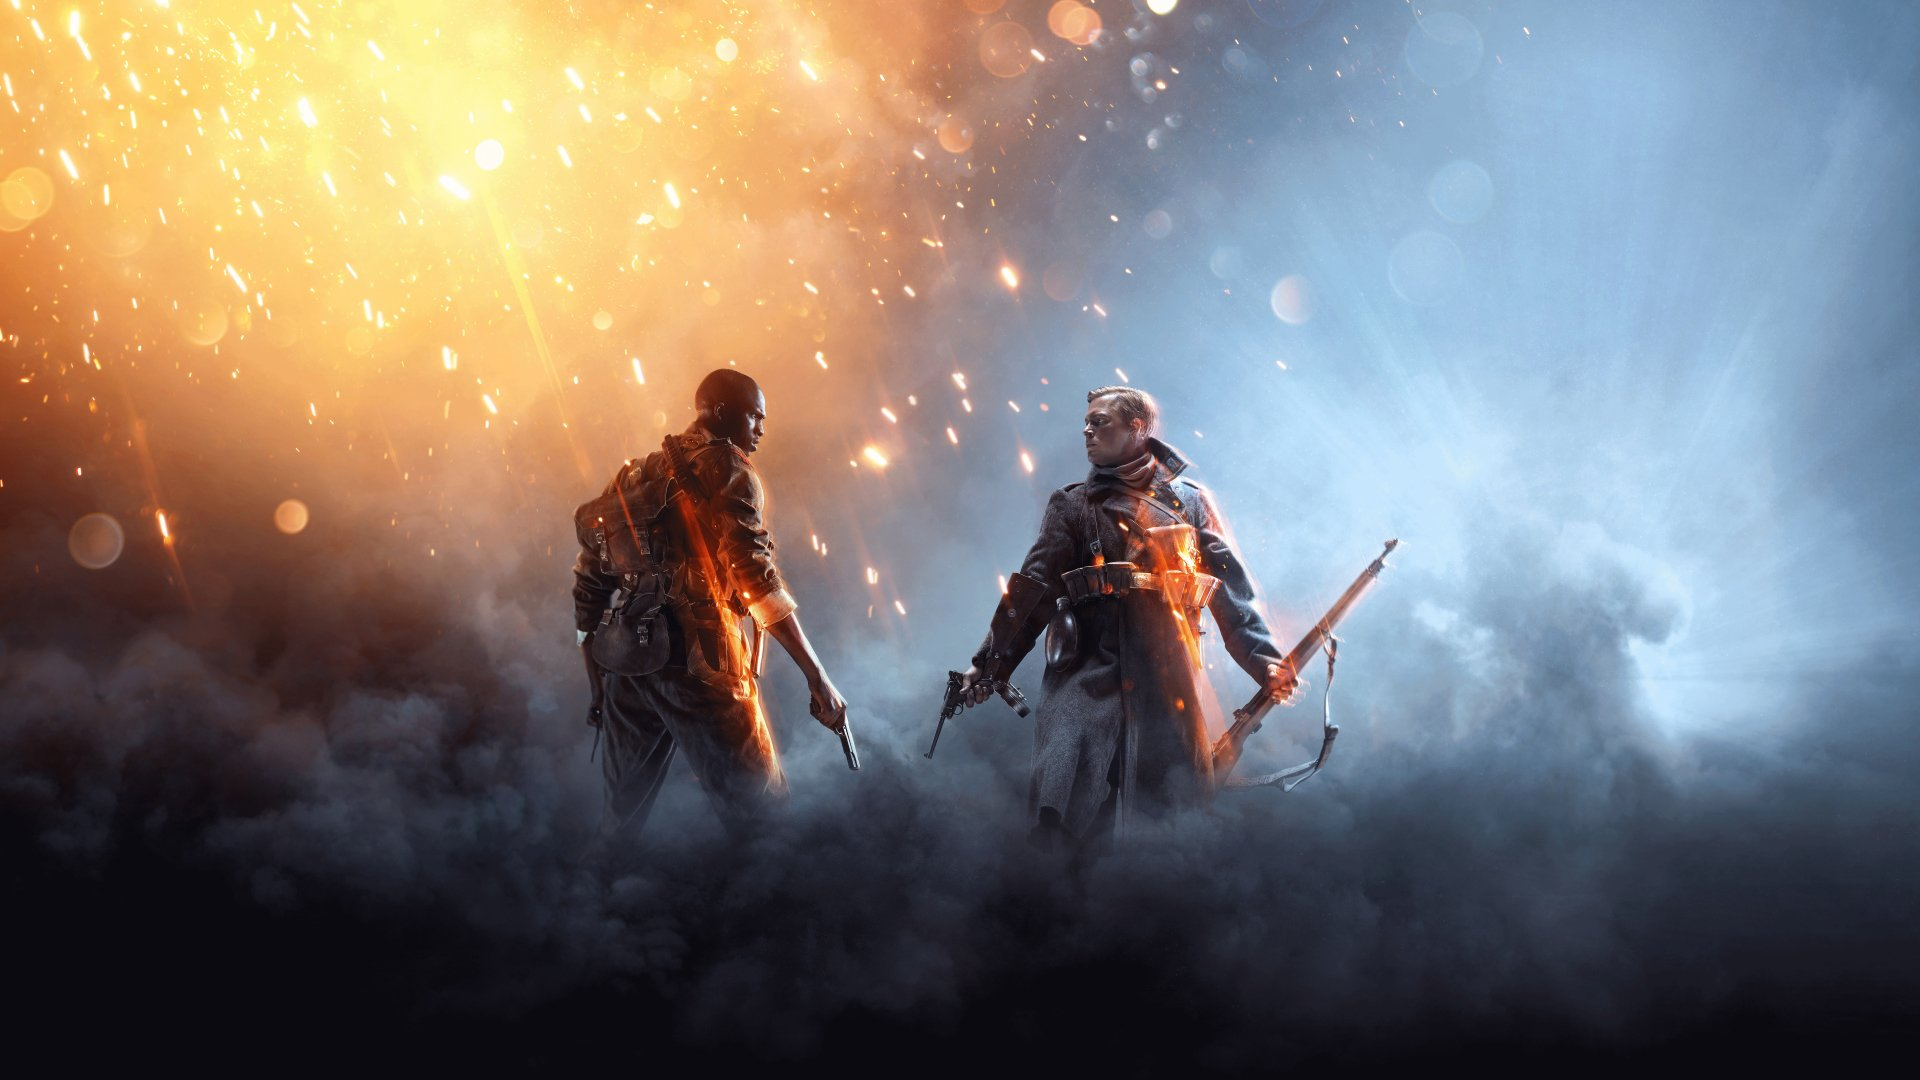 292 battlefield 1 hd wallpapers | backgrounds - wallpaper abyss